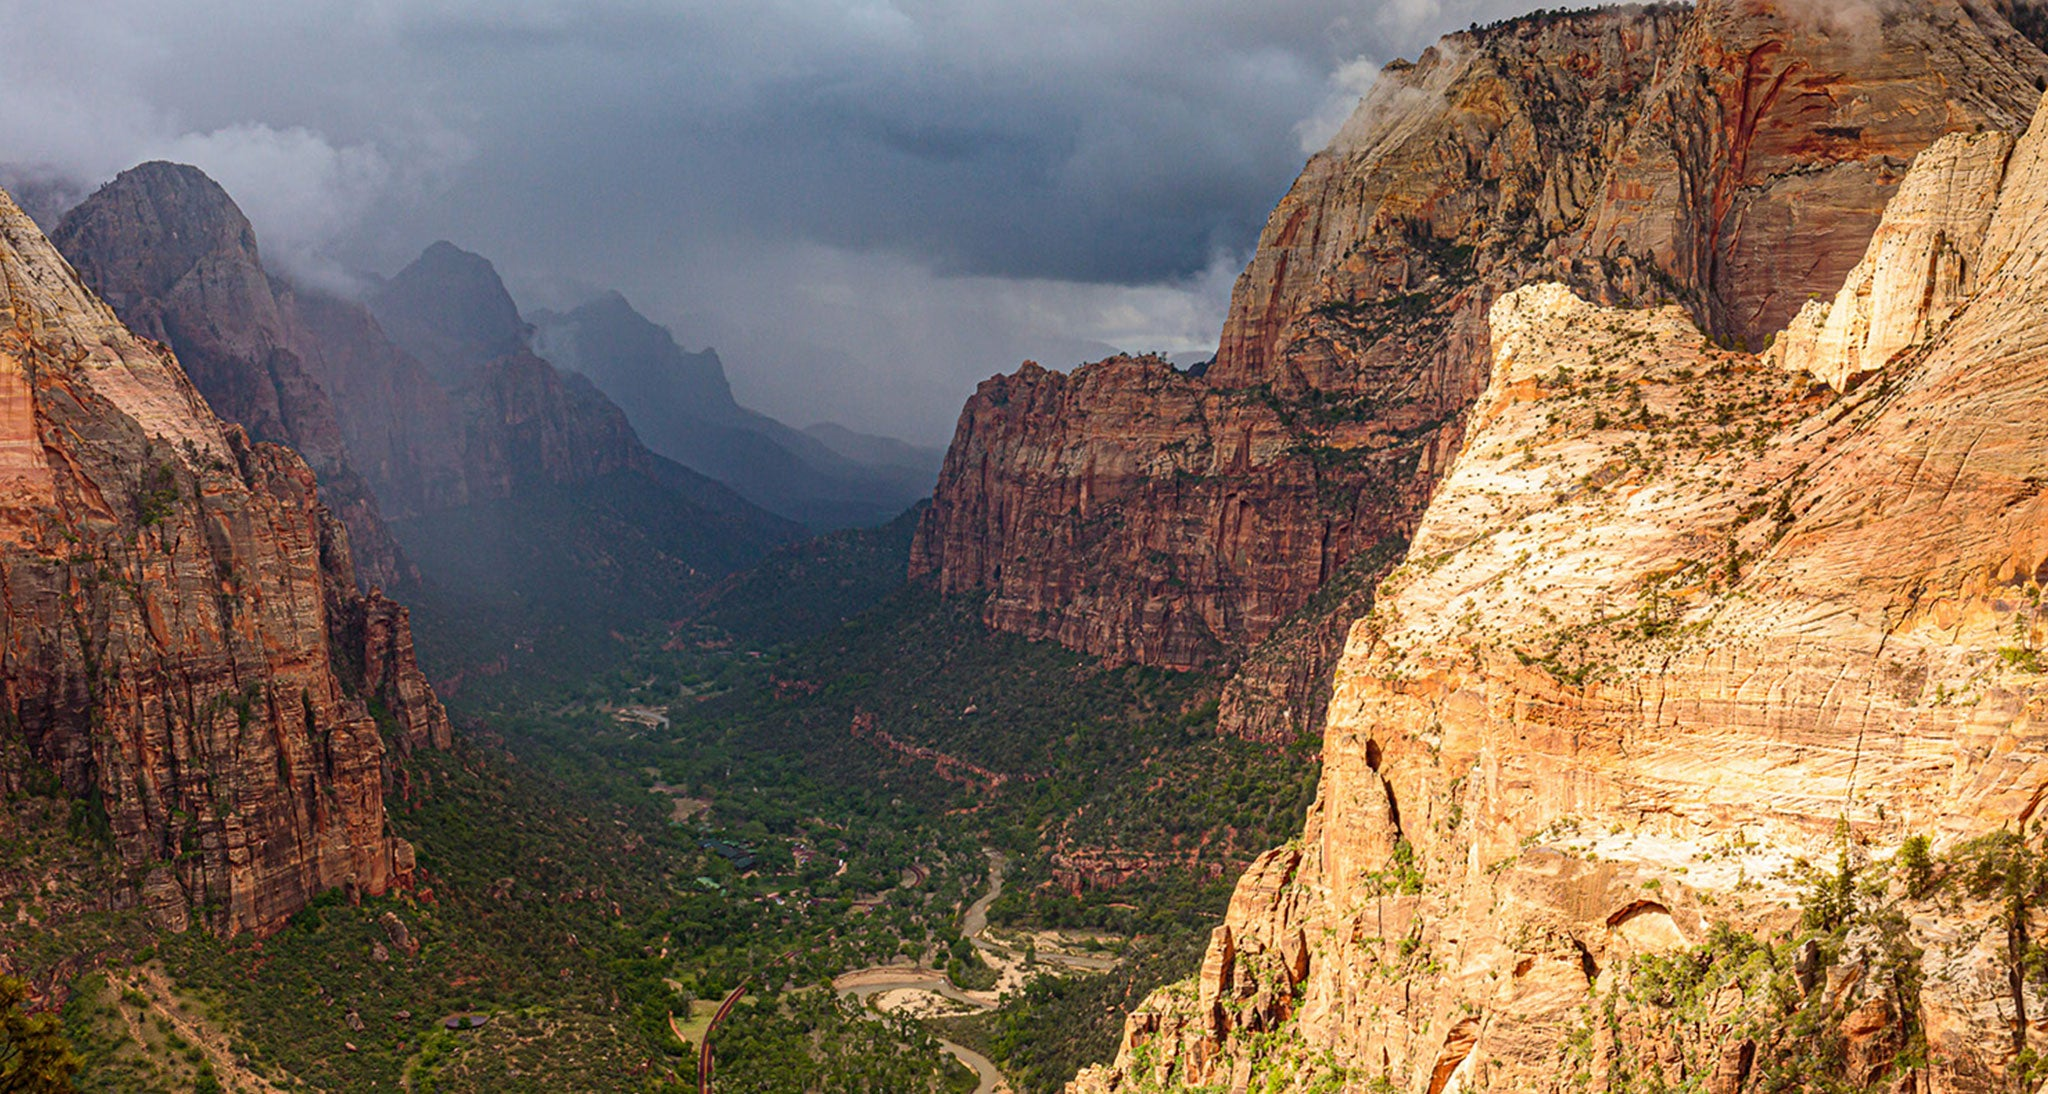 This is a rapidly developing GTFO situation on the summit of Angel's Landing in Zion National Park, Utah.  Looking south toward Zion Canyon entrance are the telltale signs of a cumulonimbus cloud-darkening bases, shafts of rain and the formation of ragged low clouds beneath the base that signify strong evaporative cooling. Significant low level moisture remained over the area left  from an all night rain from nimbostratus.  A little daily heating set the stage for thunderstorm development as the atmosphere transitioned from stable to unstable.  This thunderstorm did not move over us but expended and built over us so we were under one massive cell.  We got off the summit in time to avert exposure to lightning and heavy rain.  Slow moving cells with very light steering flow aloft can be quite dangerous as they unload their moisture over a very concentrated area vs moving through your location.